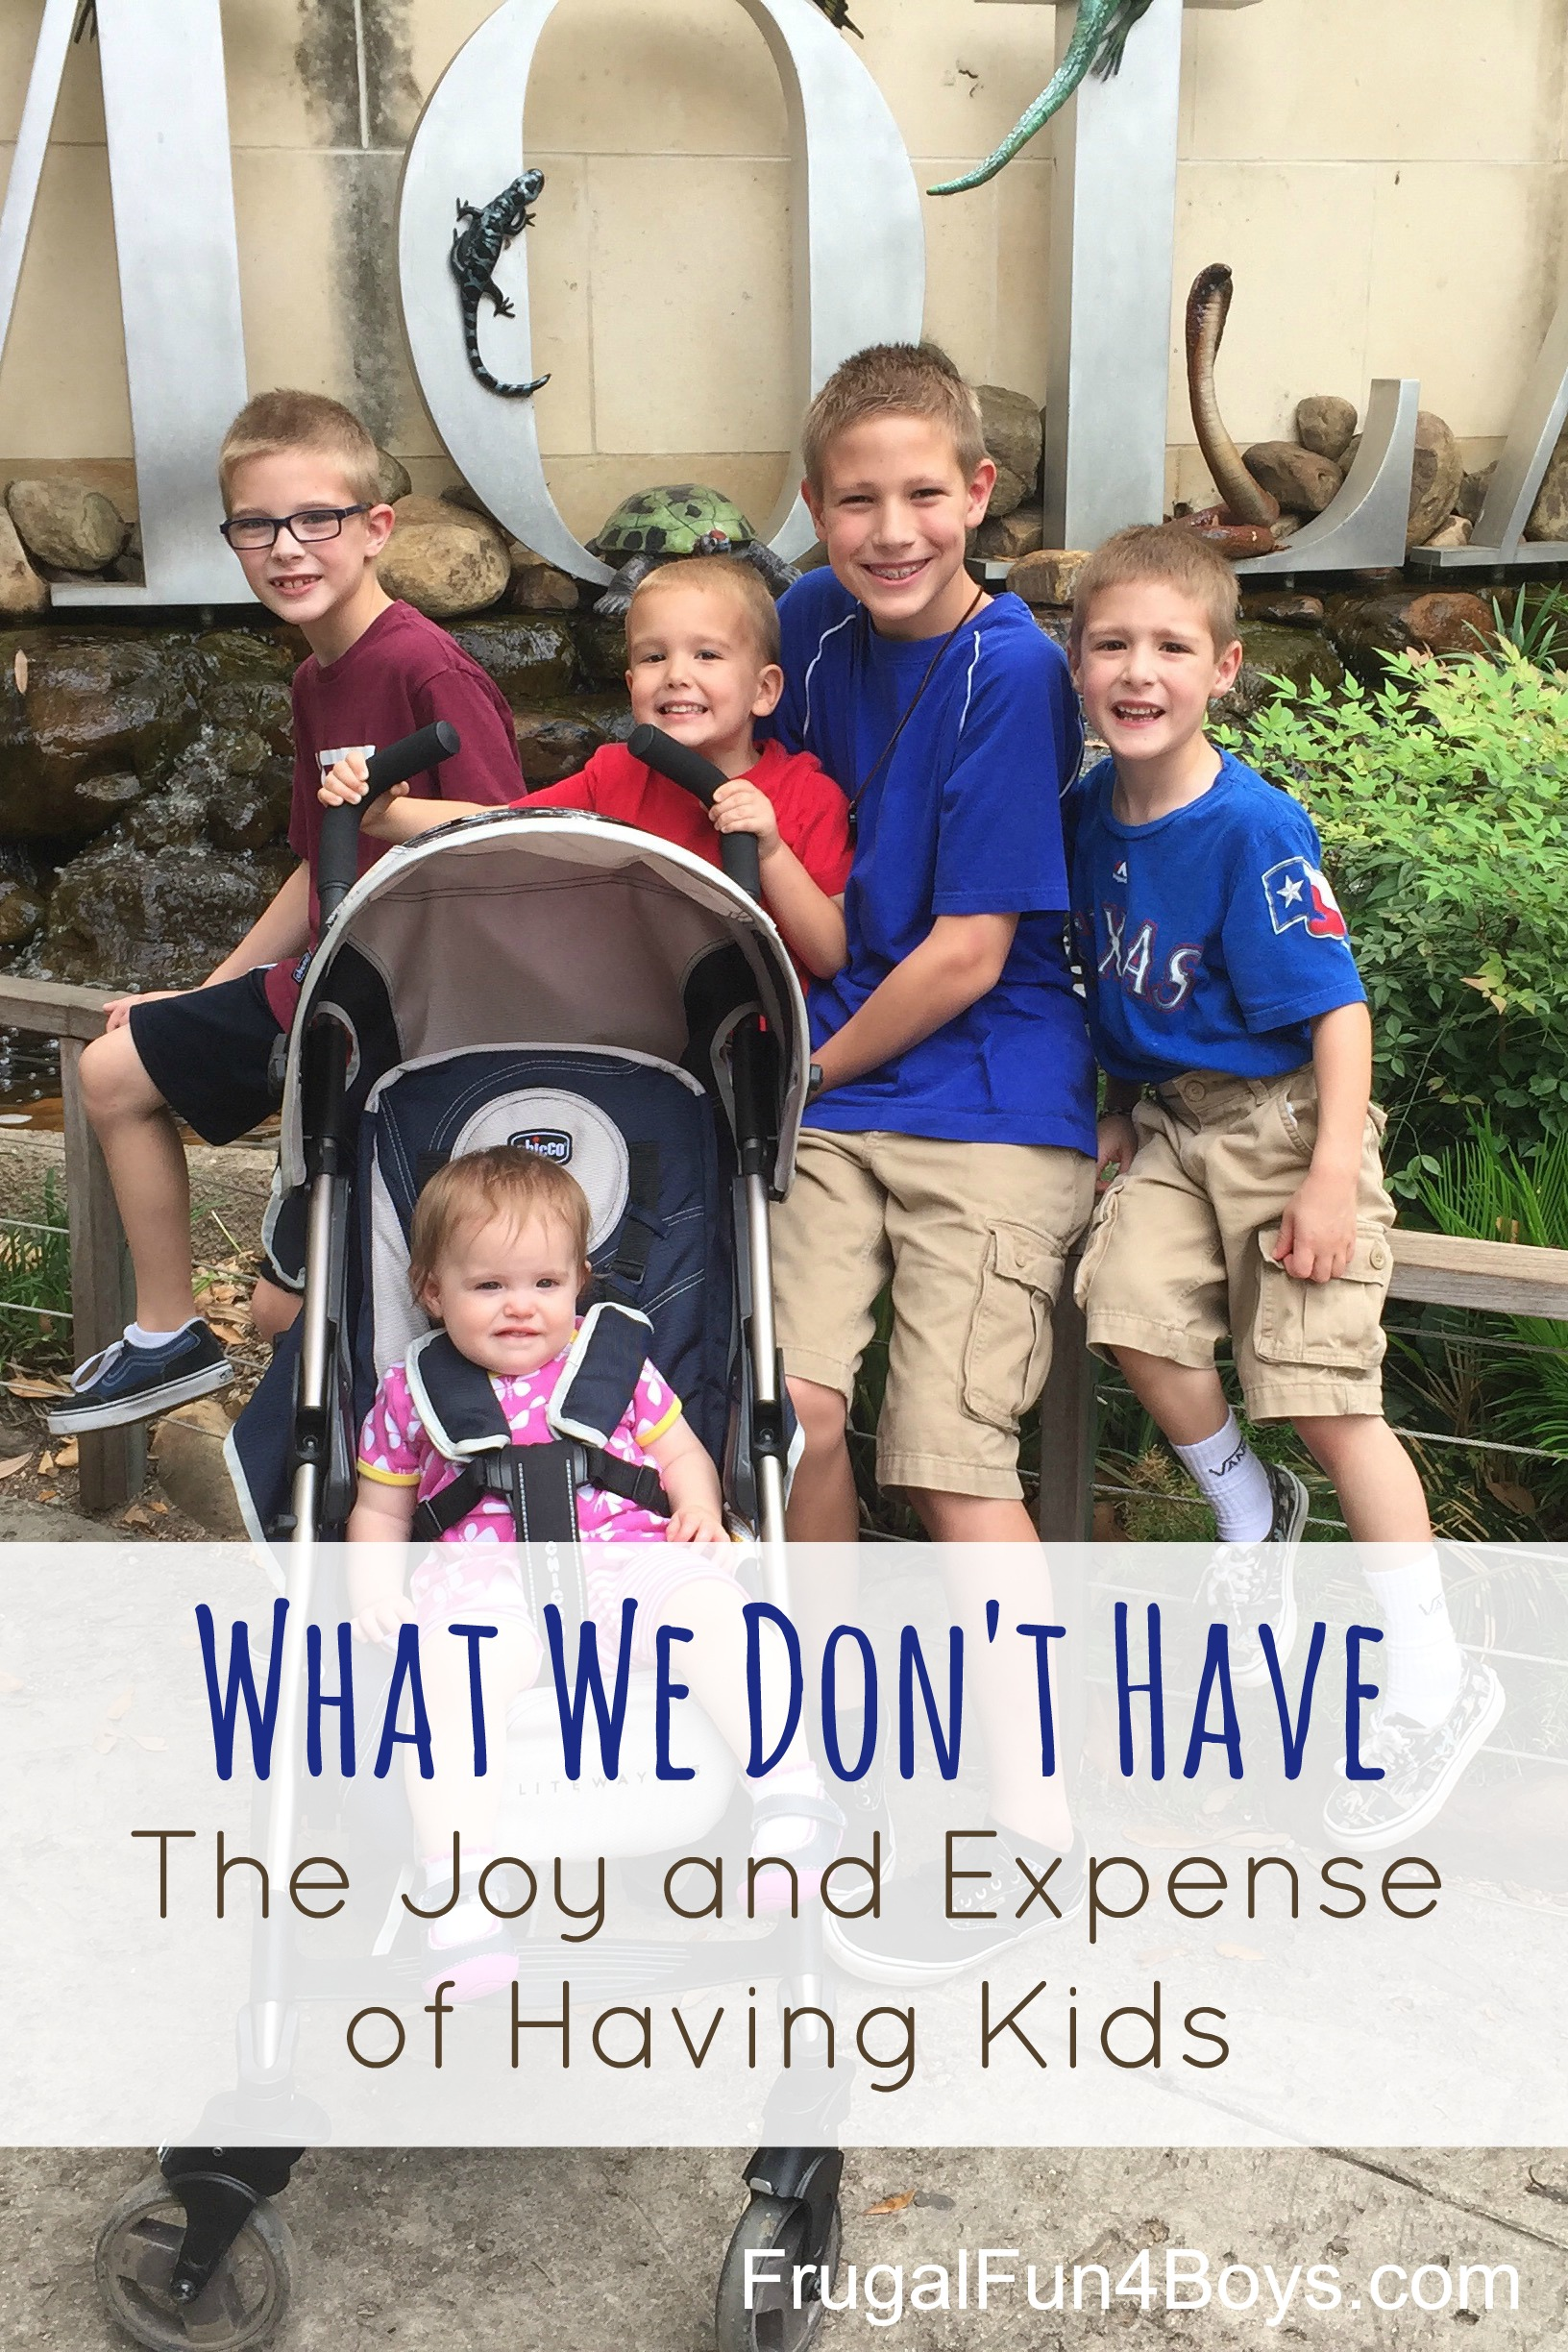 What We Don't Have: The Joy and Expense of Having Kids